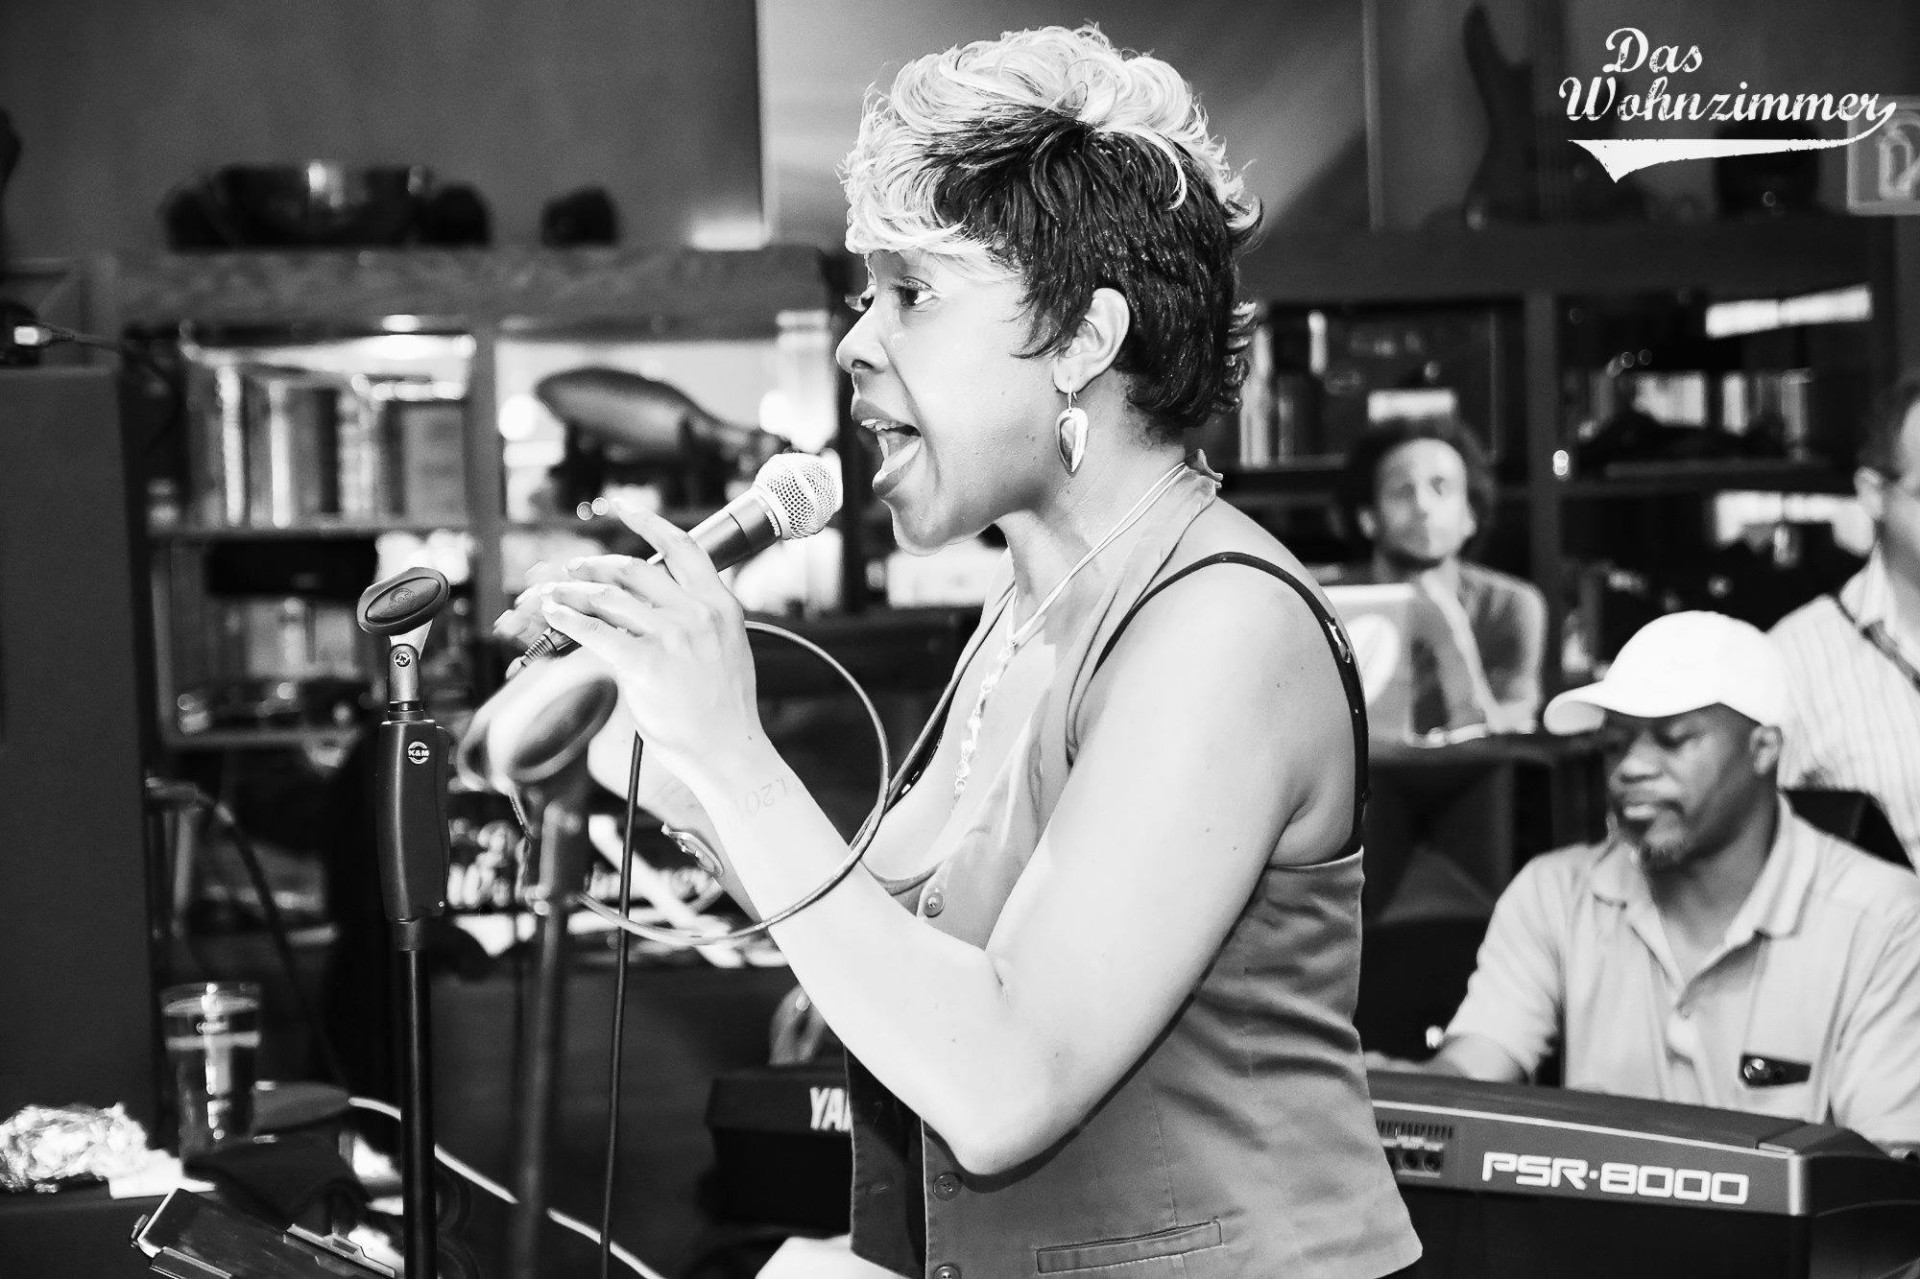 14032019 The Session Live Music By Janet Taylor Das Wohnzimmer